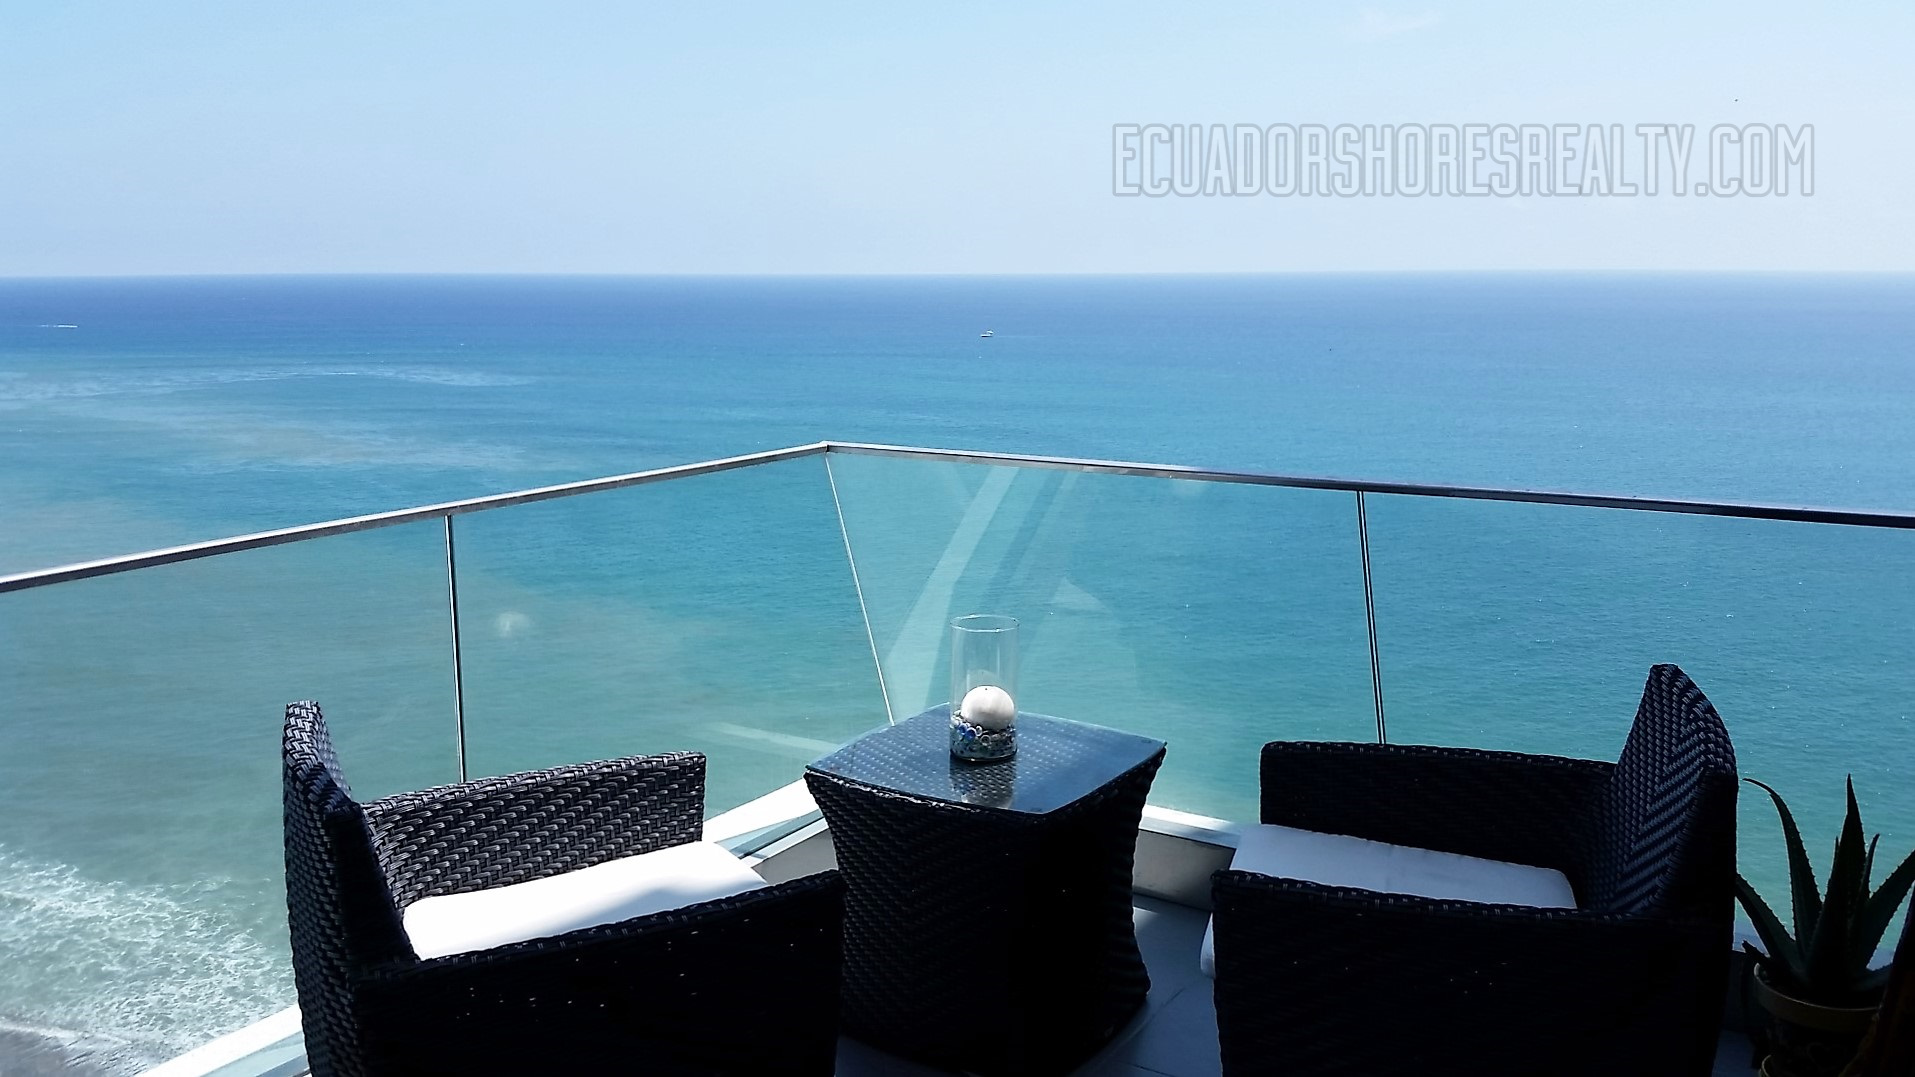 Double balcony for double the views!